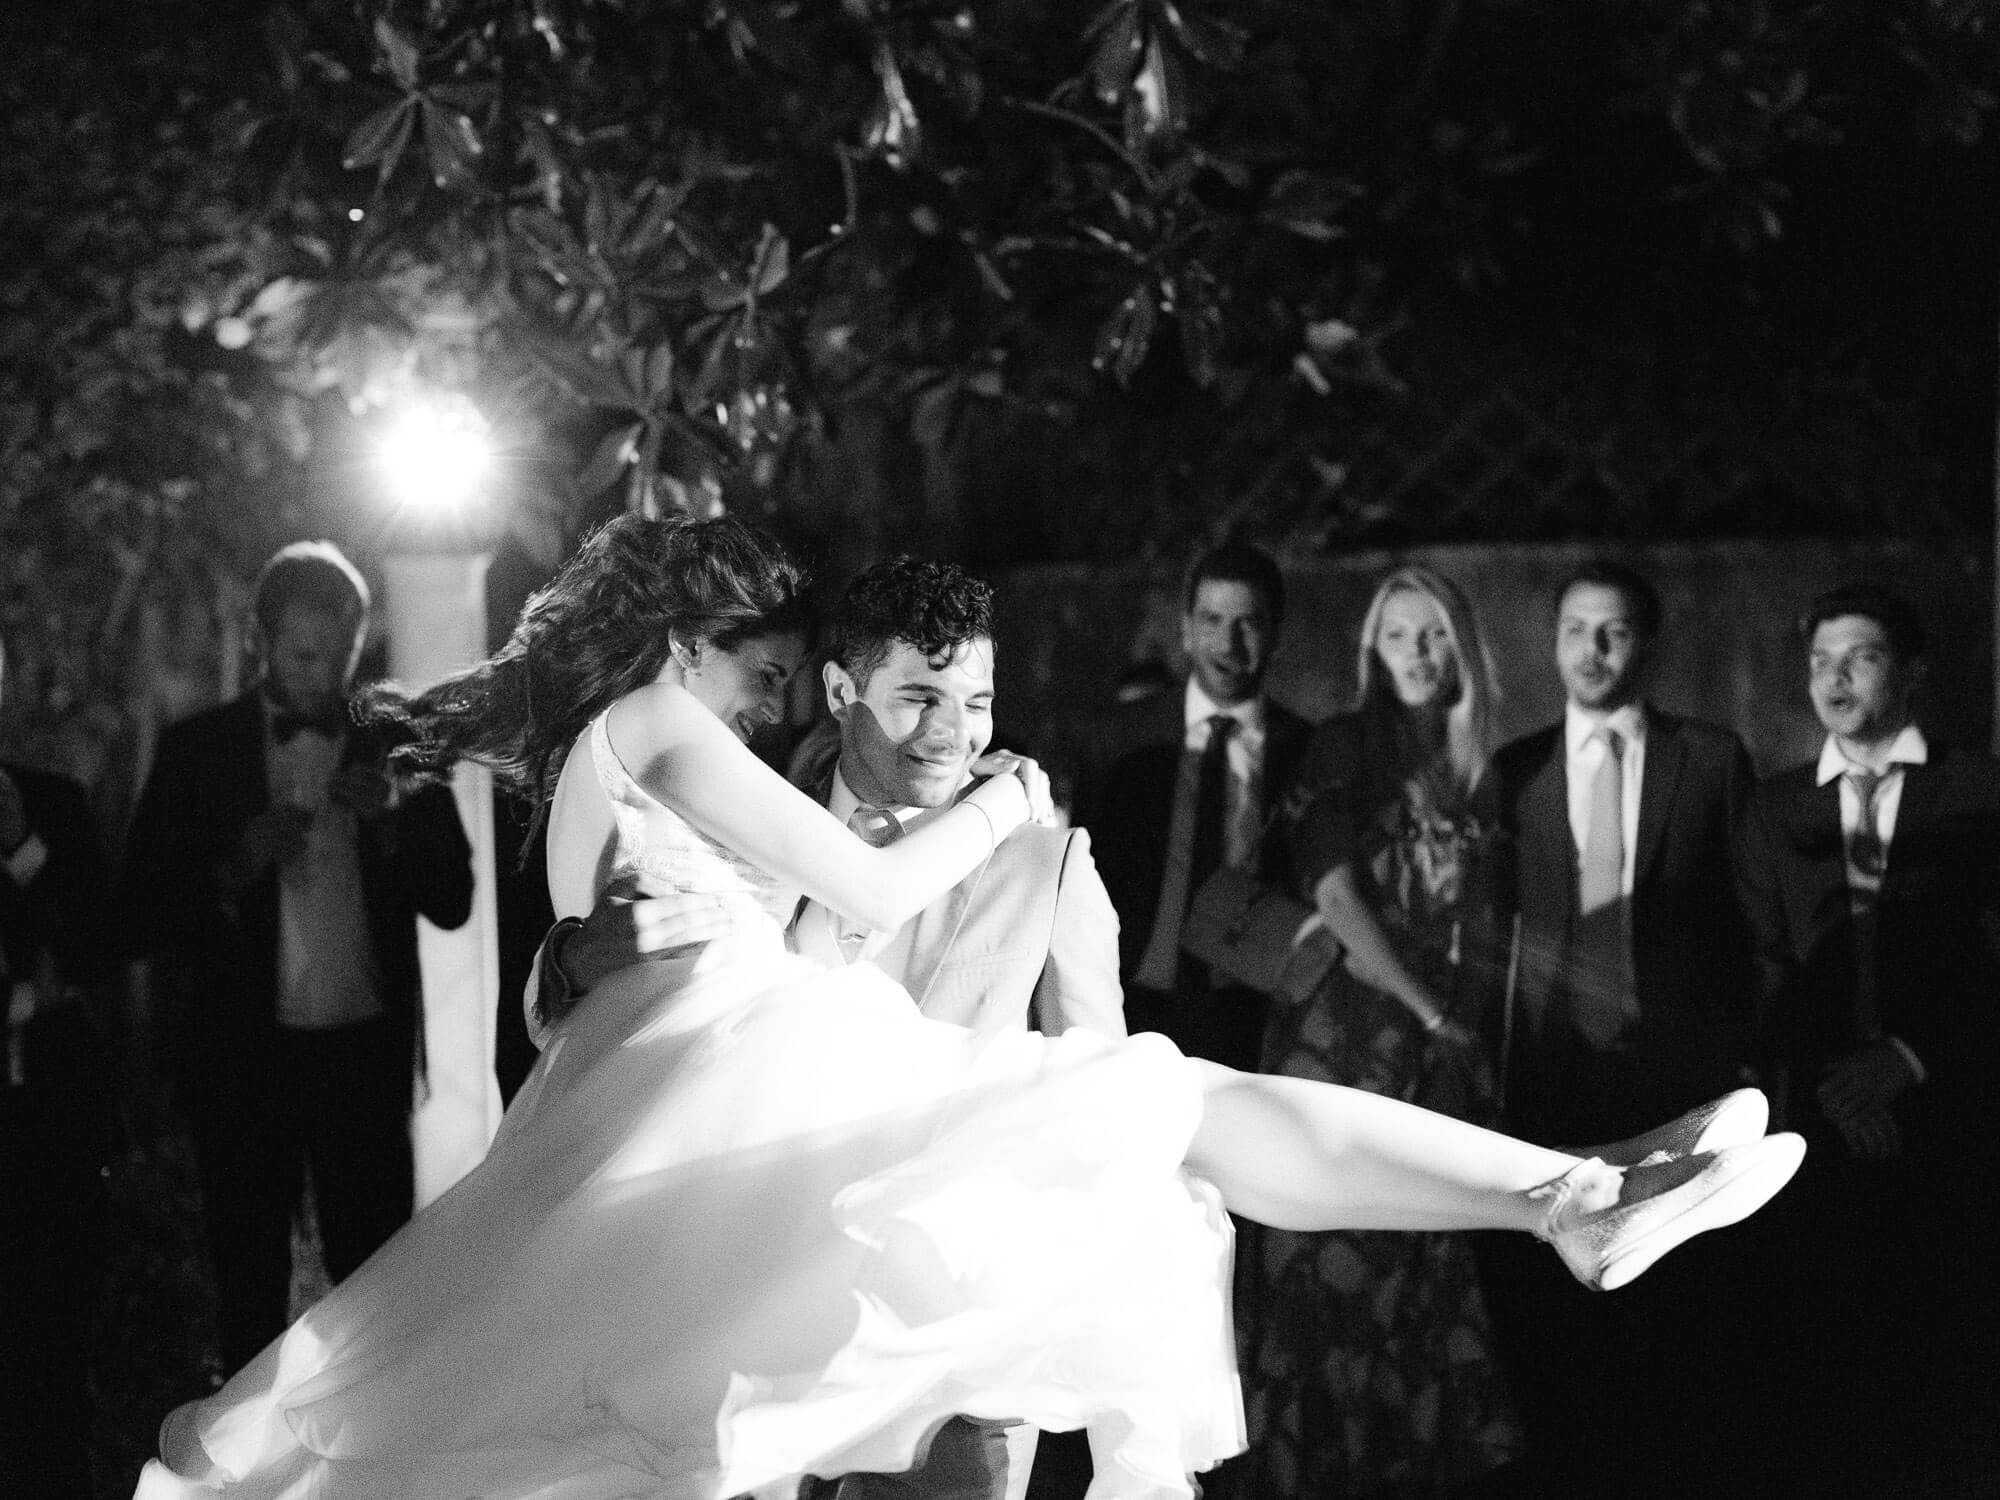 groom lifting bride during wedding first dance by Portugal Wedding Photographer